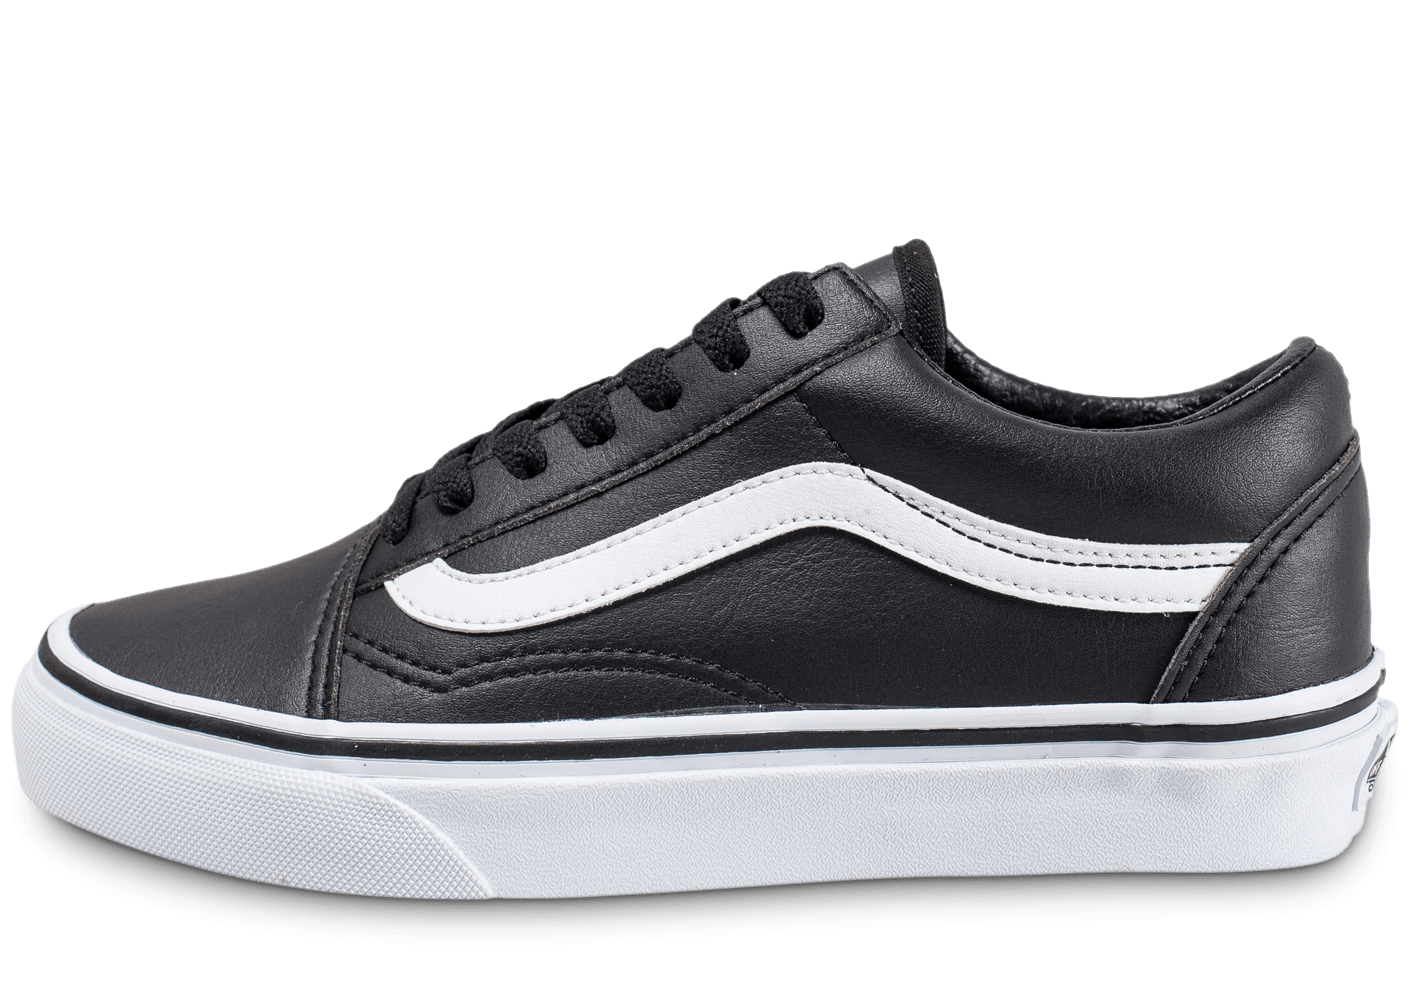 vans old skool low cuir noire chaussures black friday chausport. Black Bedroom Furniture Sets. Home Design Ideas